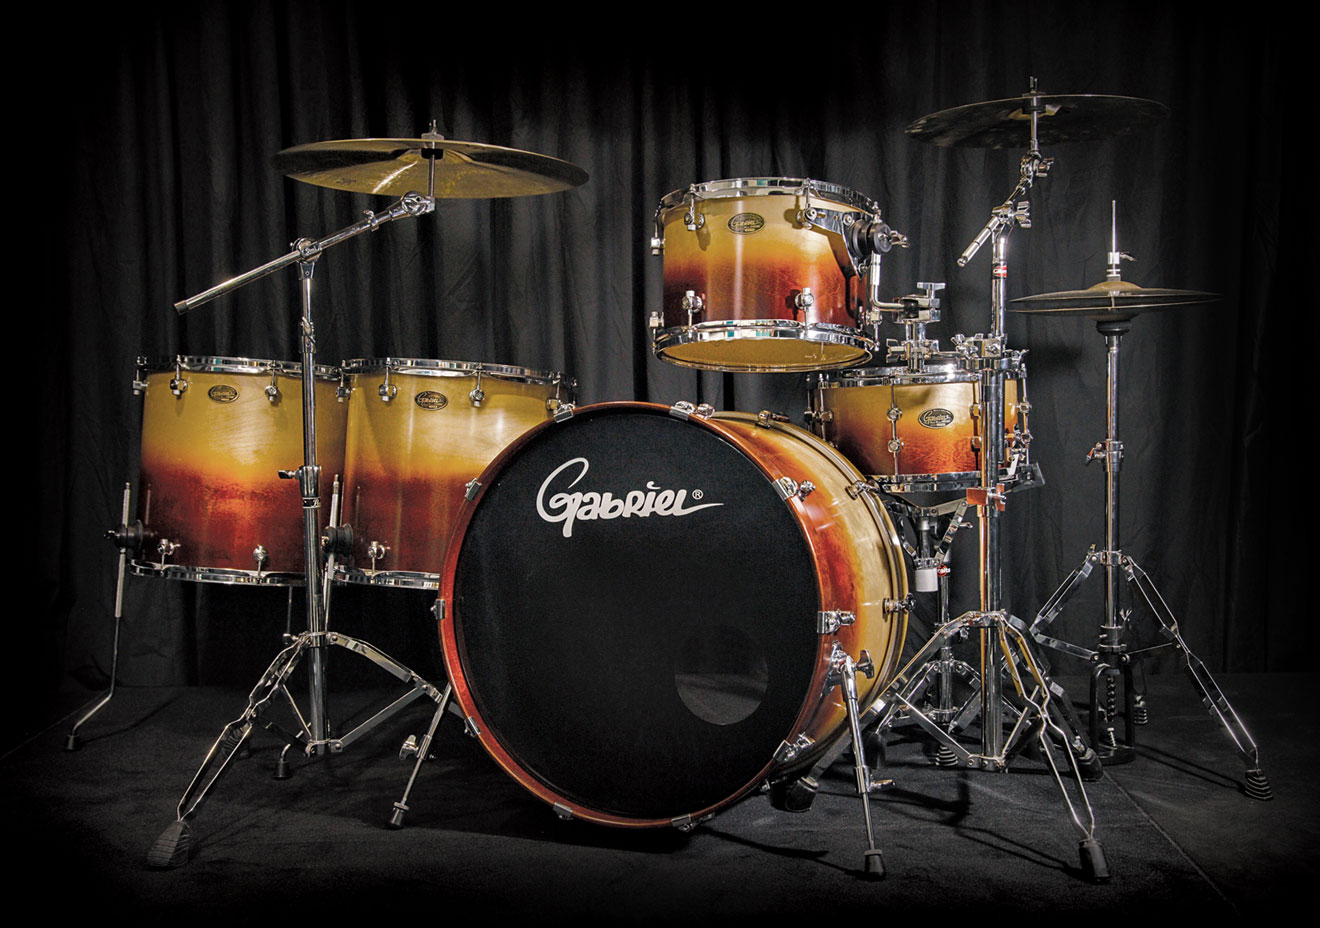 Pro Mini Gabriel Drum Kit Gabriel Drums